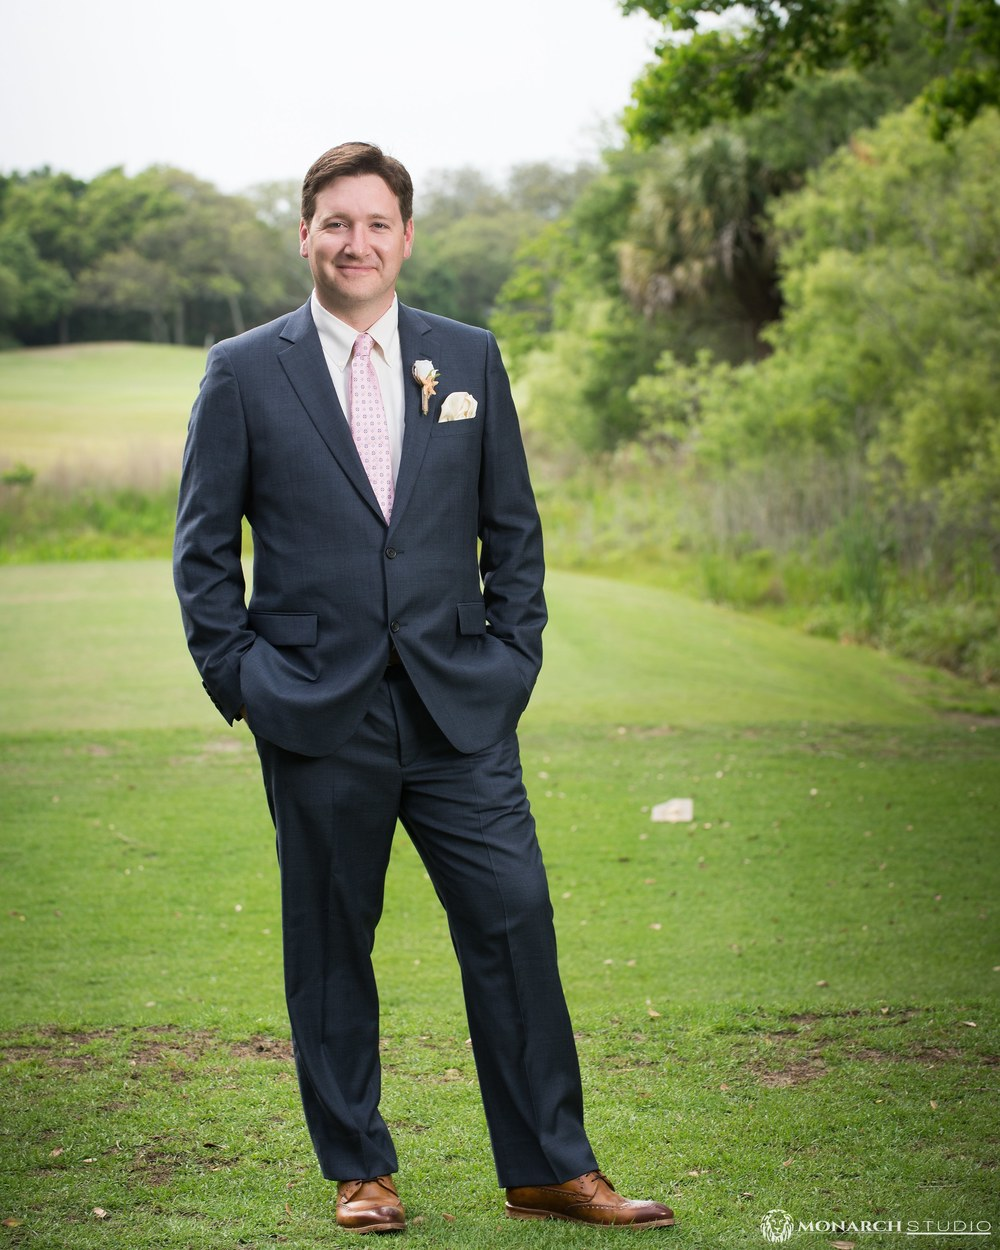 Marsh-Creek-Country-Club-St-Augustine-Wedding-Photography_0023.jpg